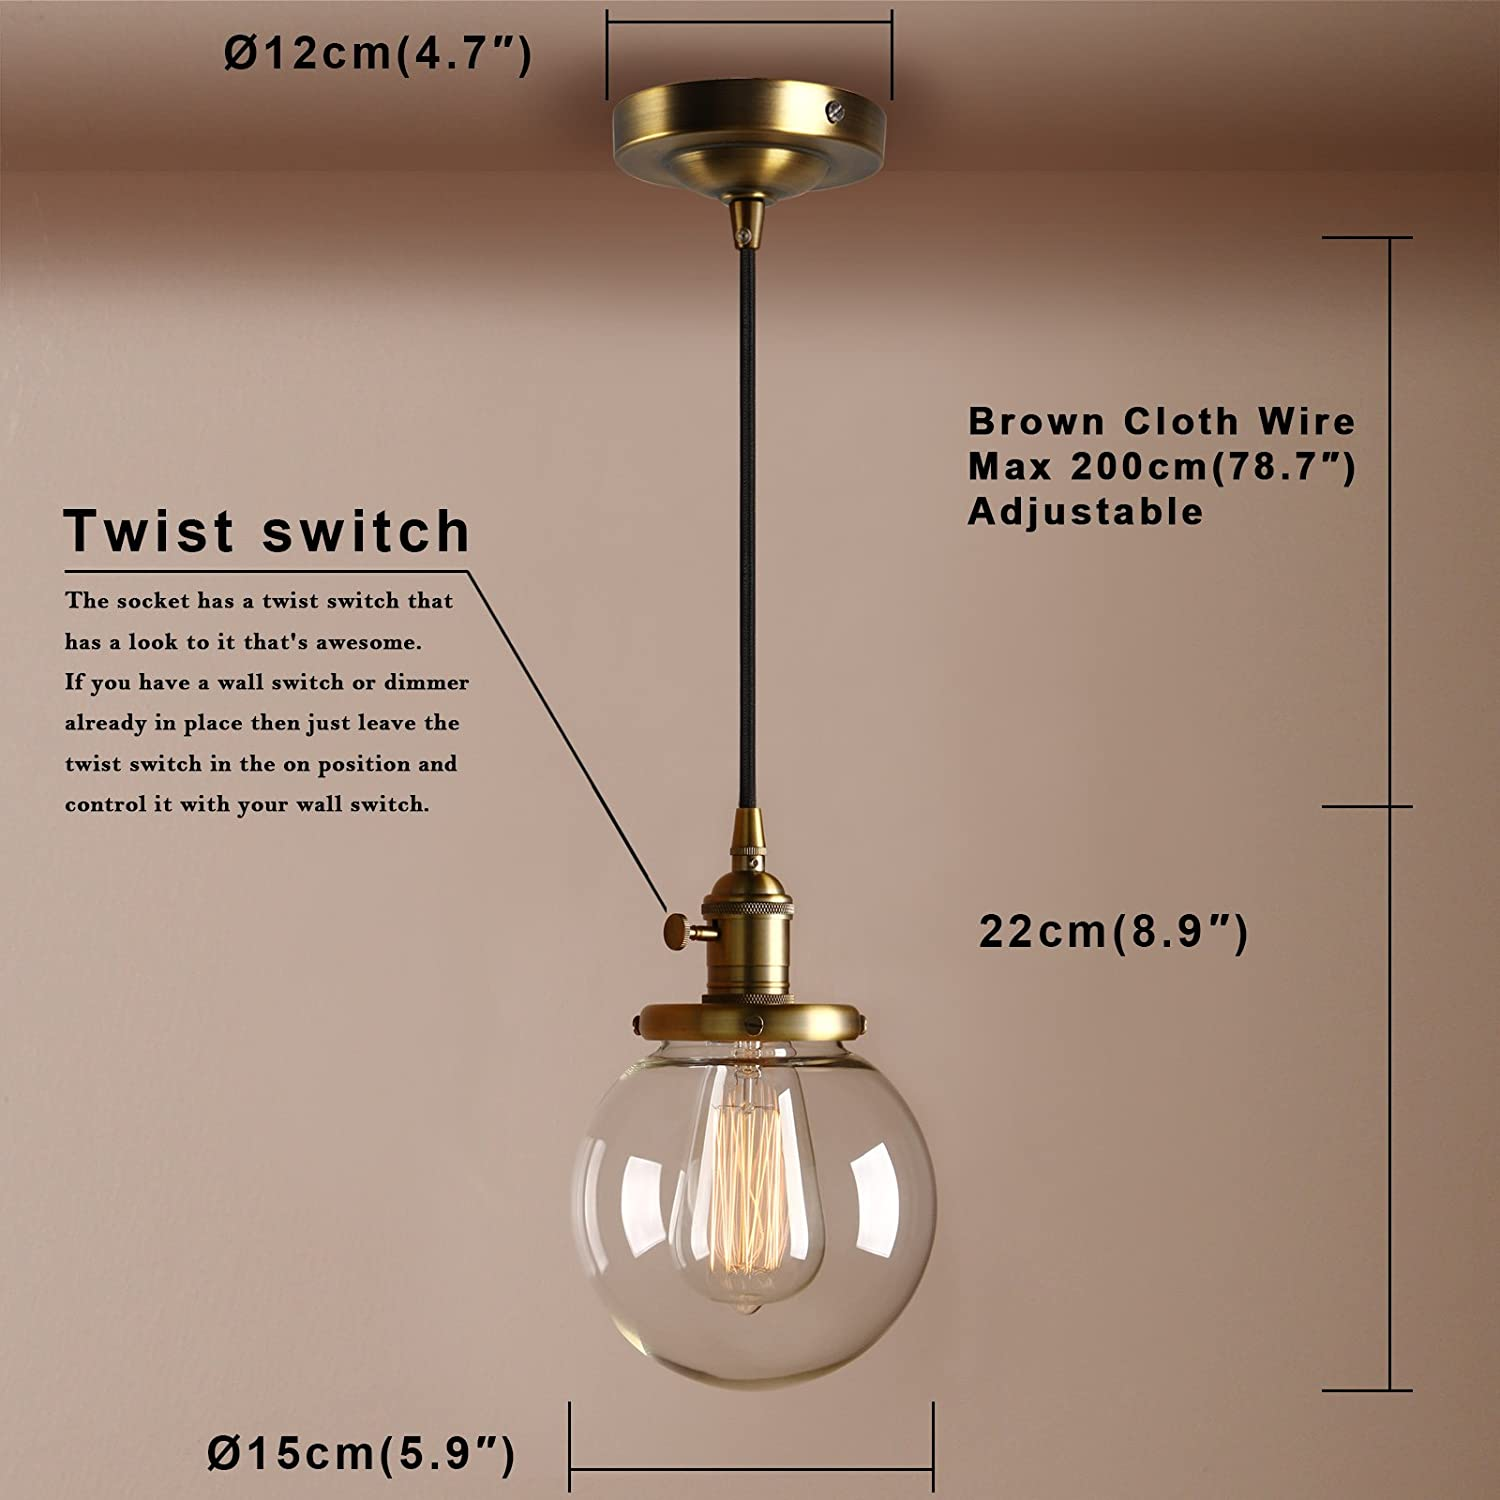 Pathson 15cm Vintage Modern Pendant Light Fittings Industrial Edison Wire That Is In The Ceiling From Switch Now To Rose Hanging Fixture Loft Bar Kitchen Island Chandelier E27 With Clear